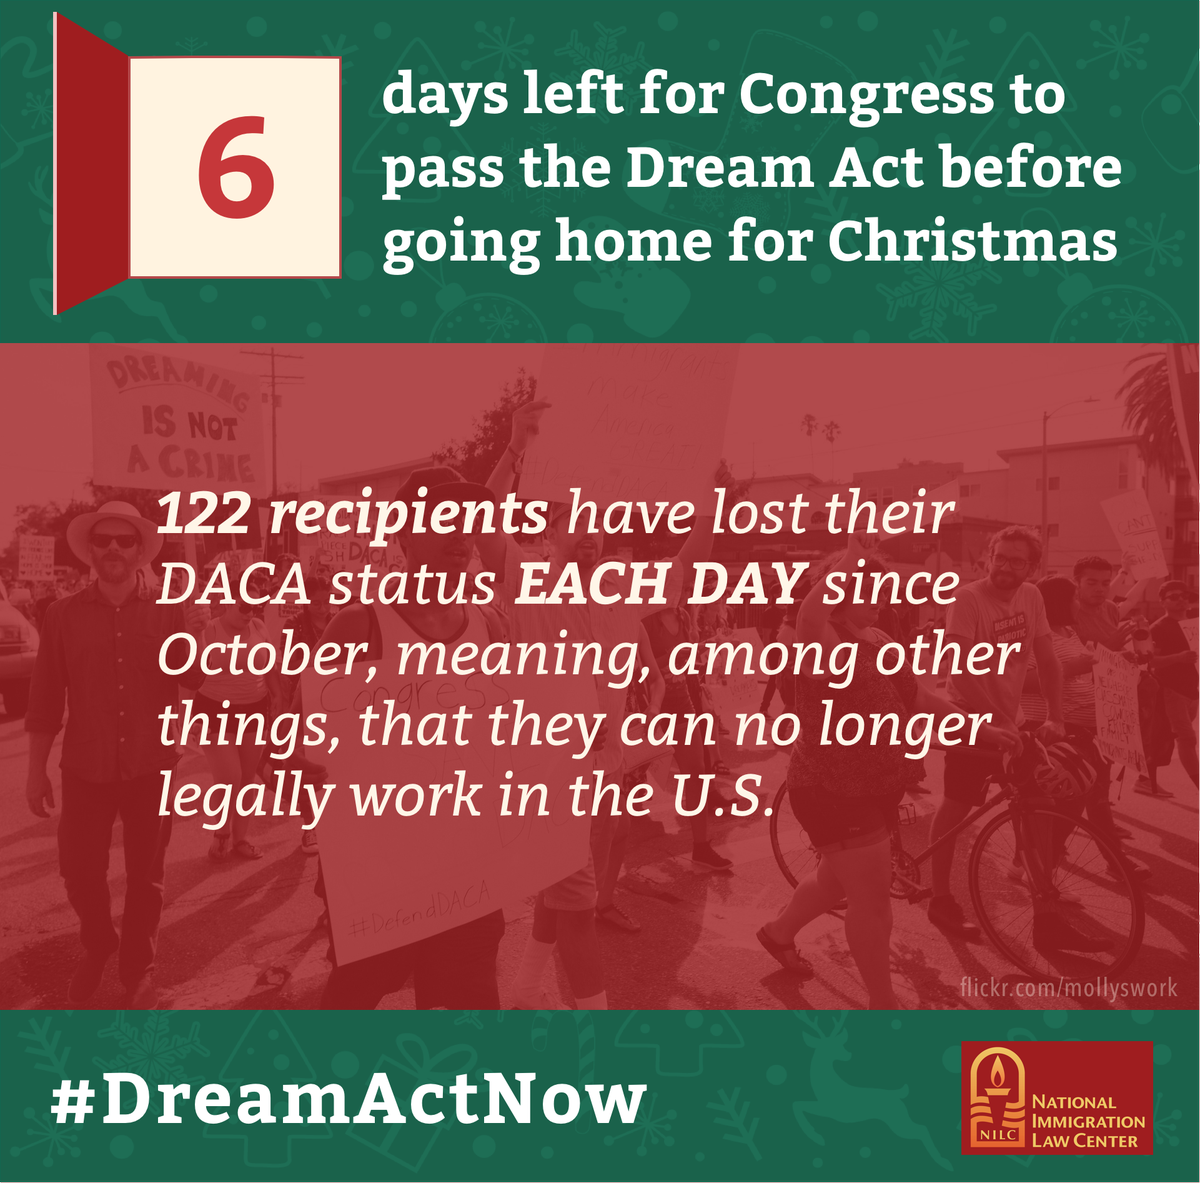 immigration the dream act should pass The dream act: a bipartisan the us senate should vote to pass the dream act not only on to debate the shape of a wider immigration reform, the dream act is.